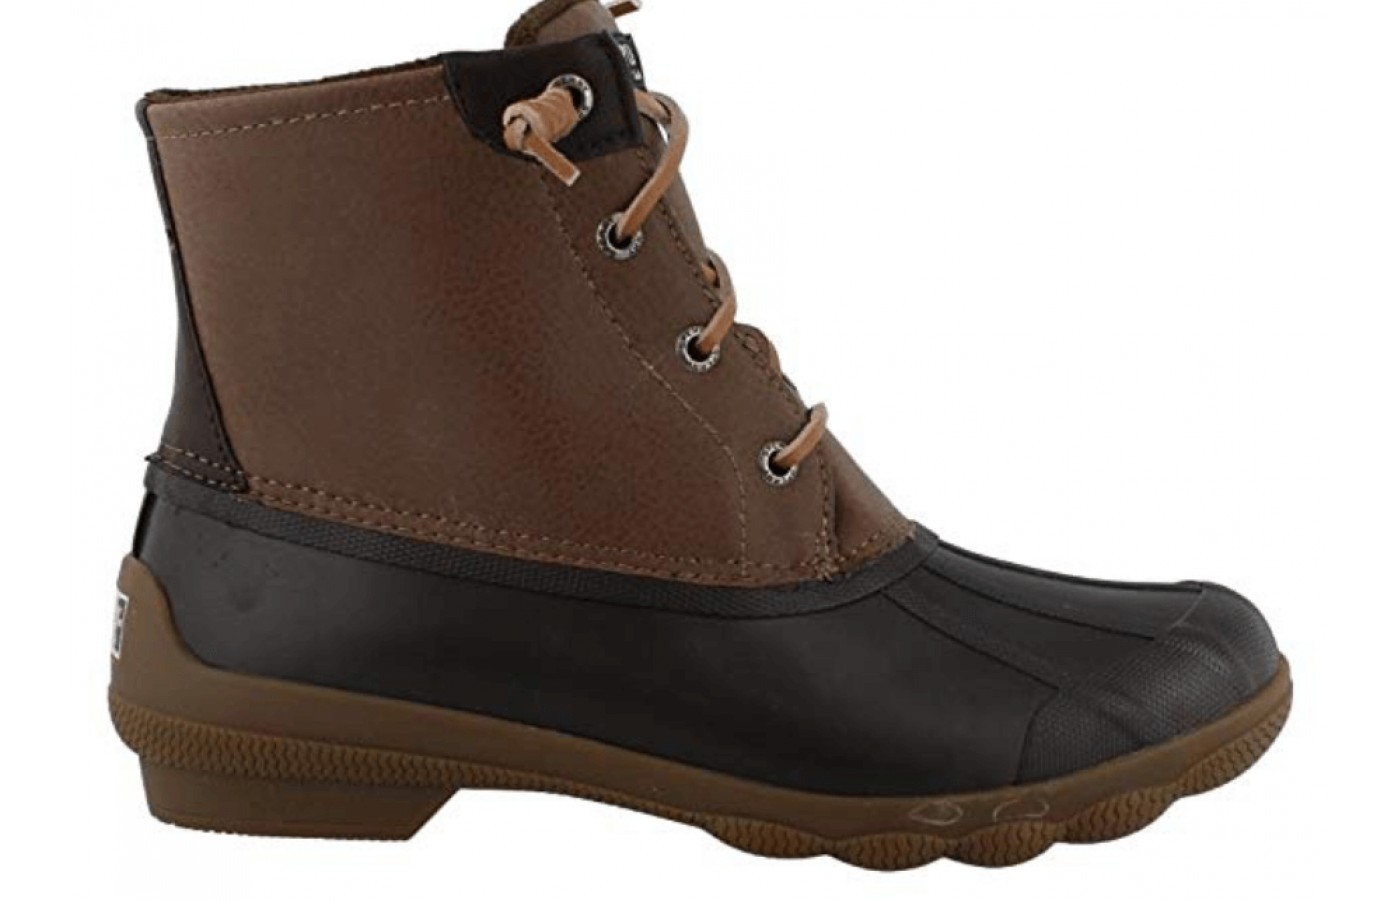 The side view of the Sperry Womens Syren Gulf Closed Toe Ankle Cold Weather Boots